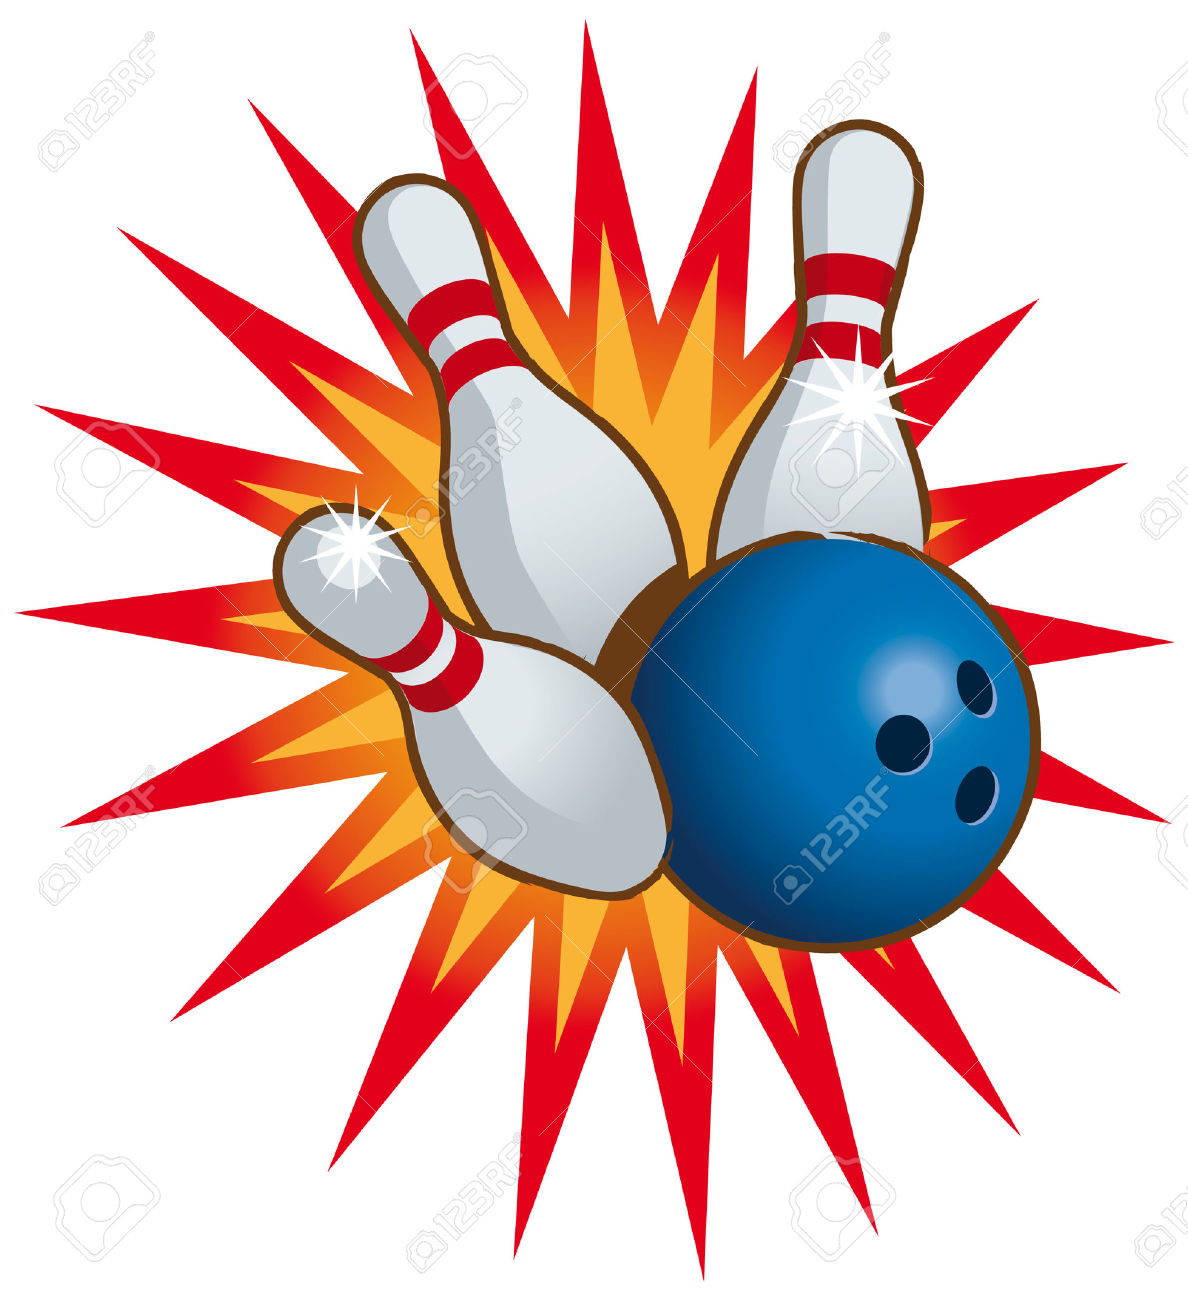 1188x1300 Bowling Clip Art Free Interesting Bowling Ball And Pins Clip Art